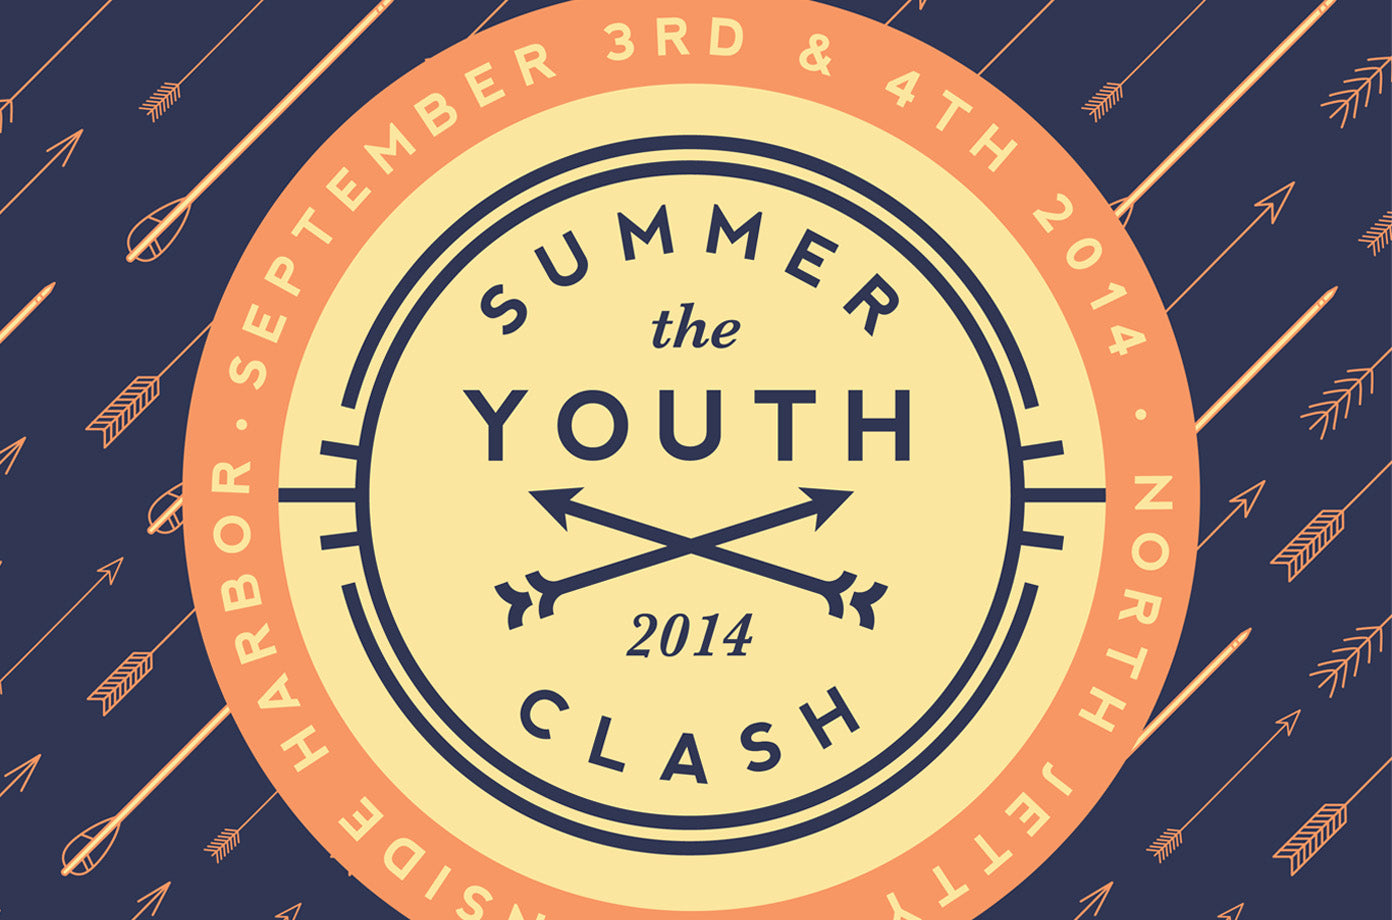 The Summer Youth Clash